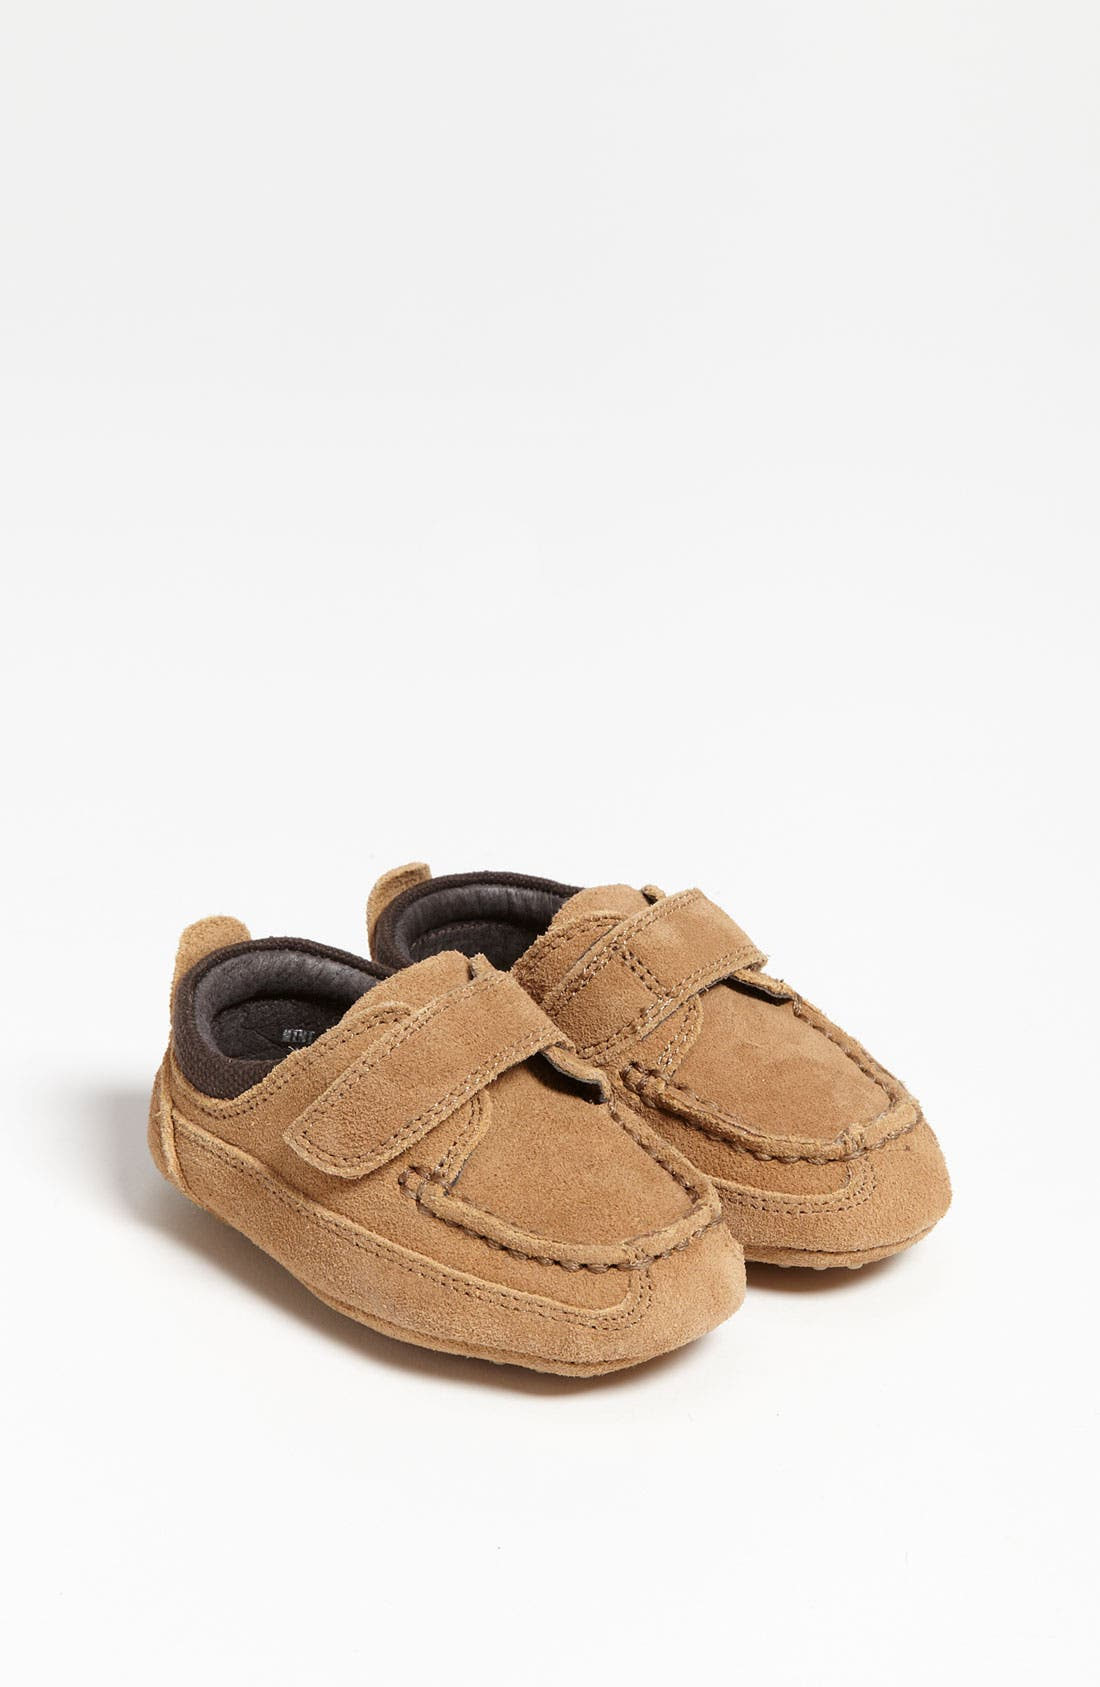 Main Image - Cole Haan 'Mini Johnny' Shoe (Baby)